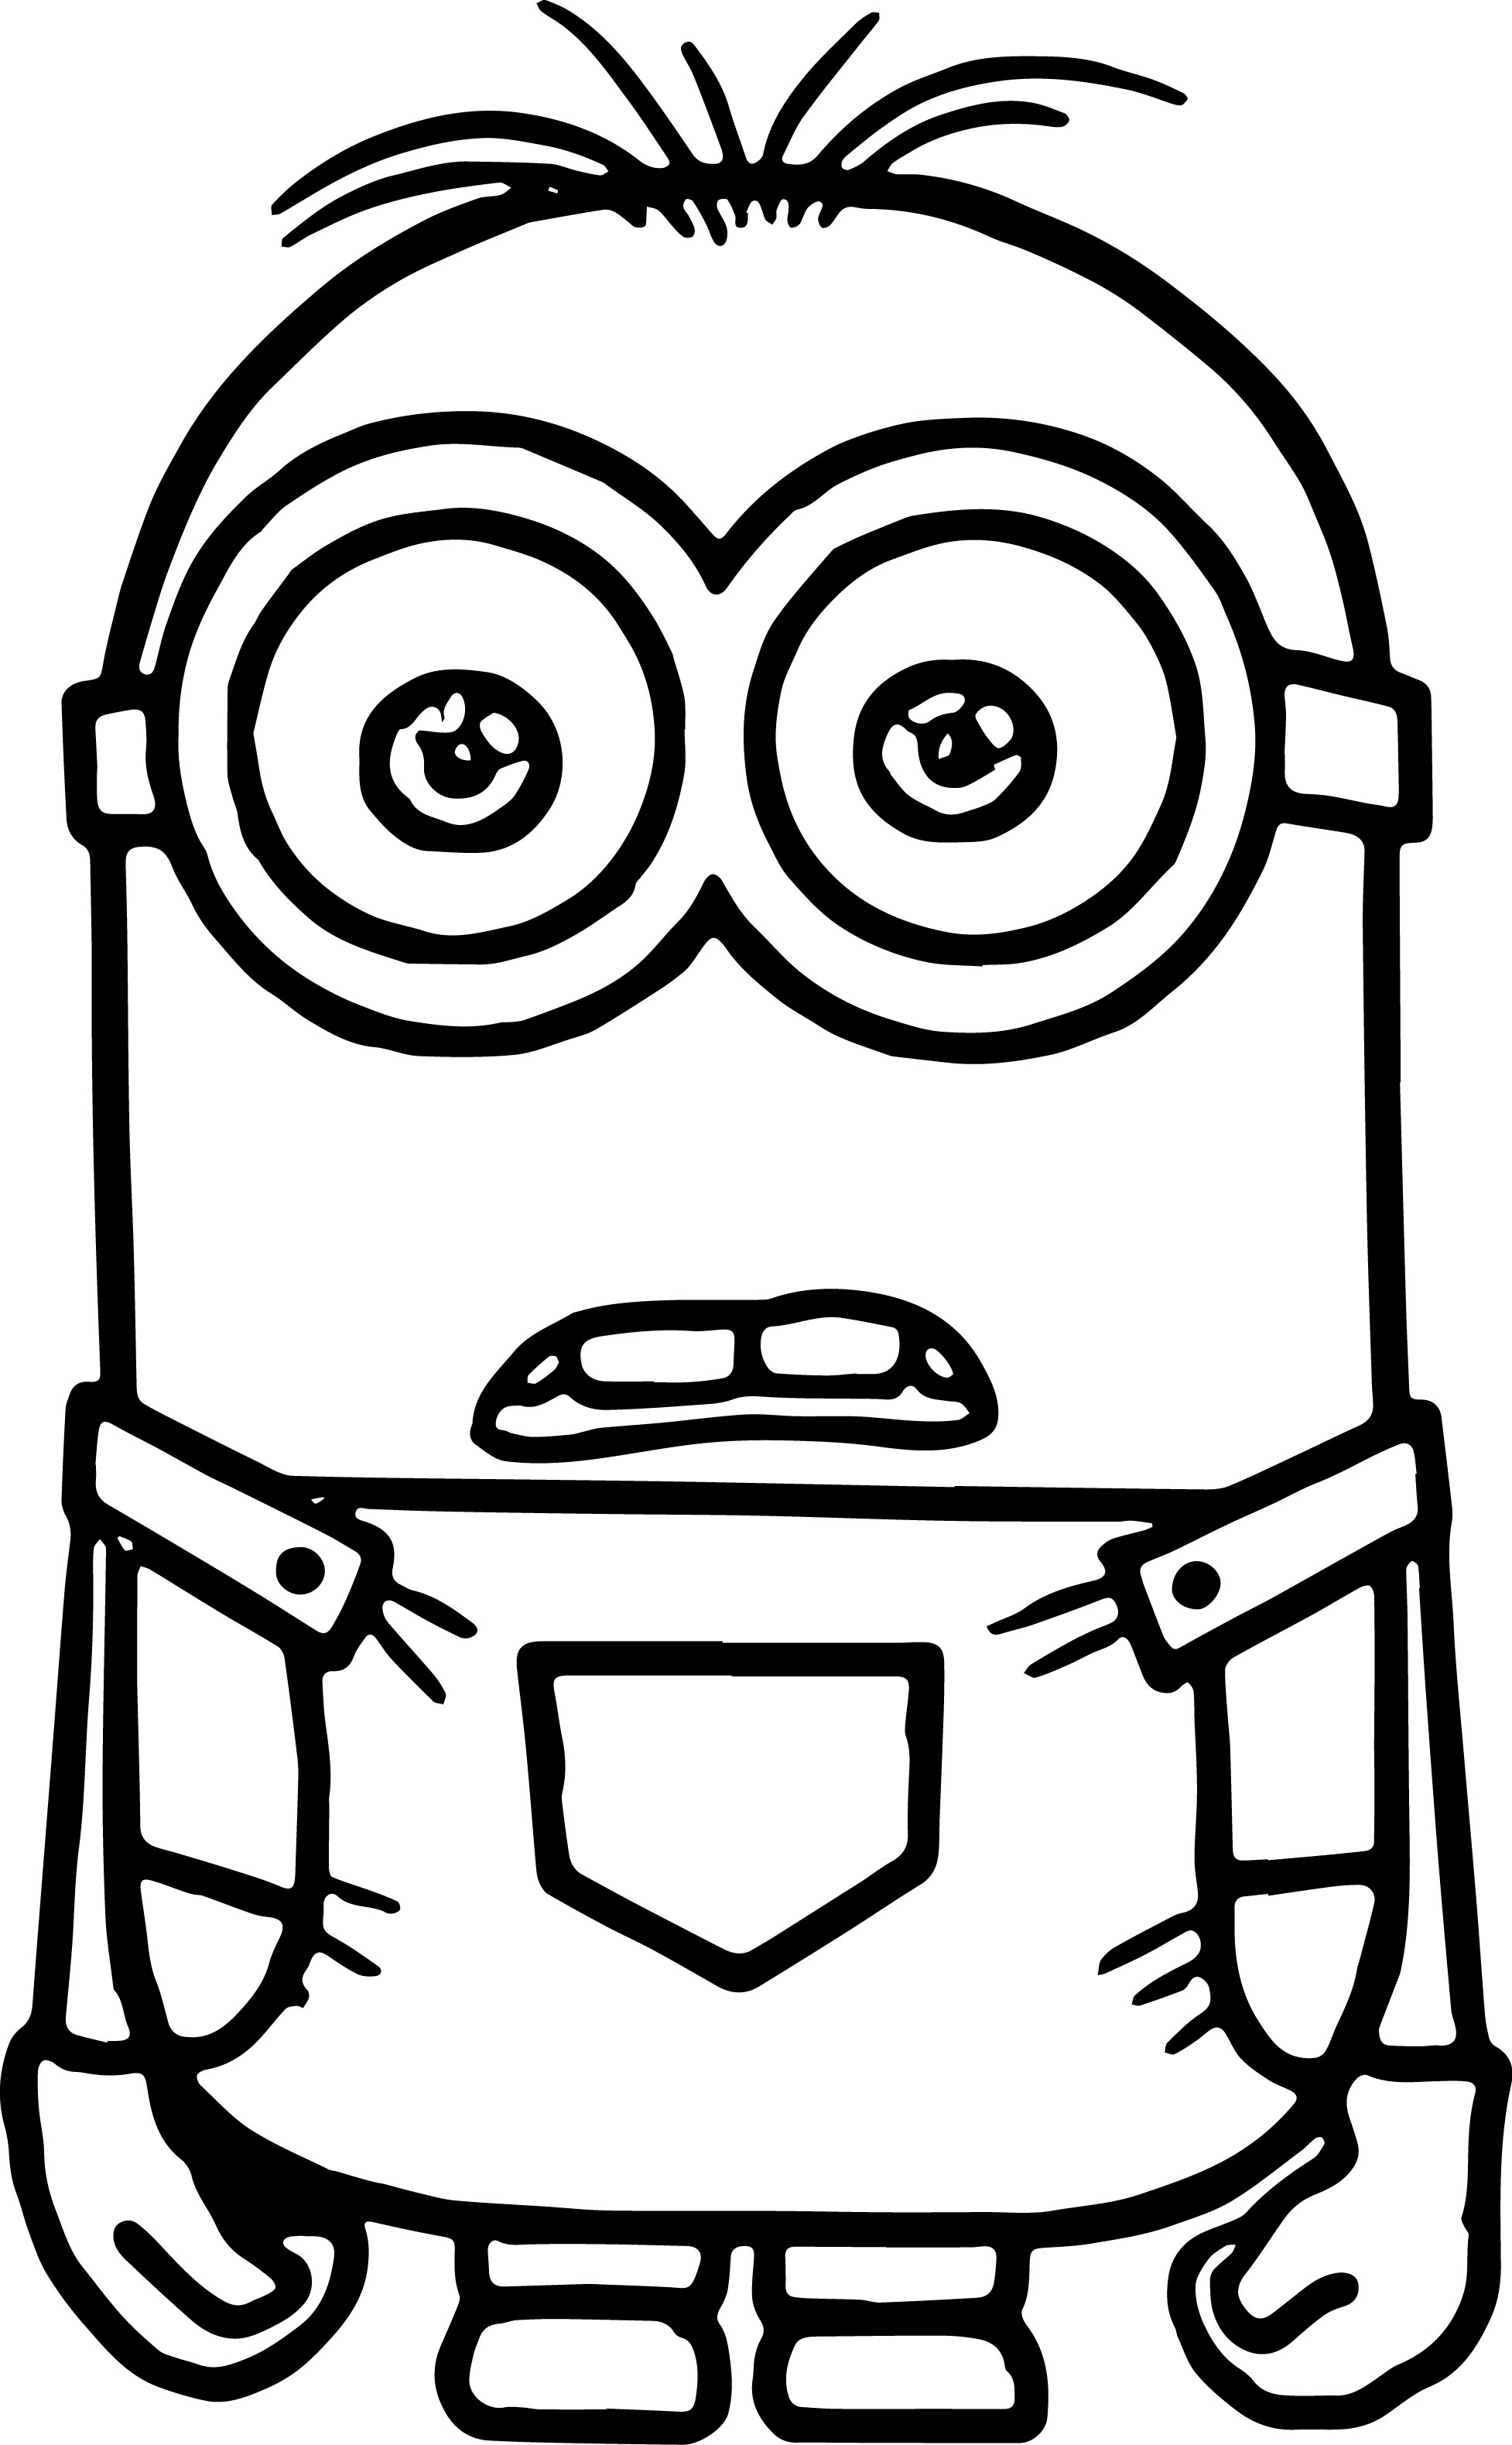 May Calendar Girl Free Book : Minion coloring pages fotolip rich image and wallpaper